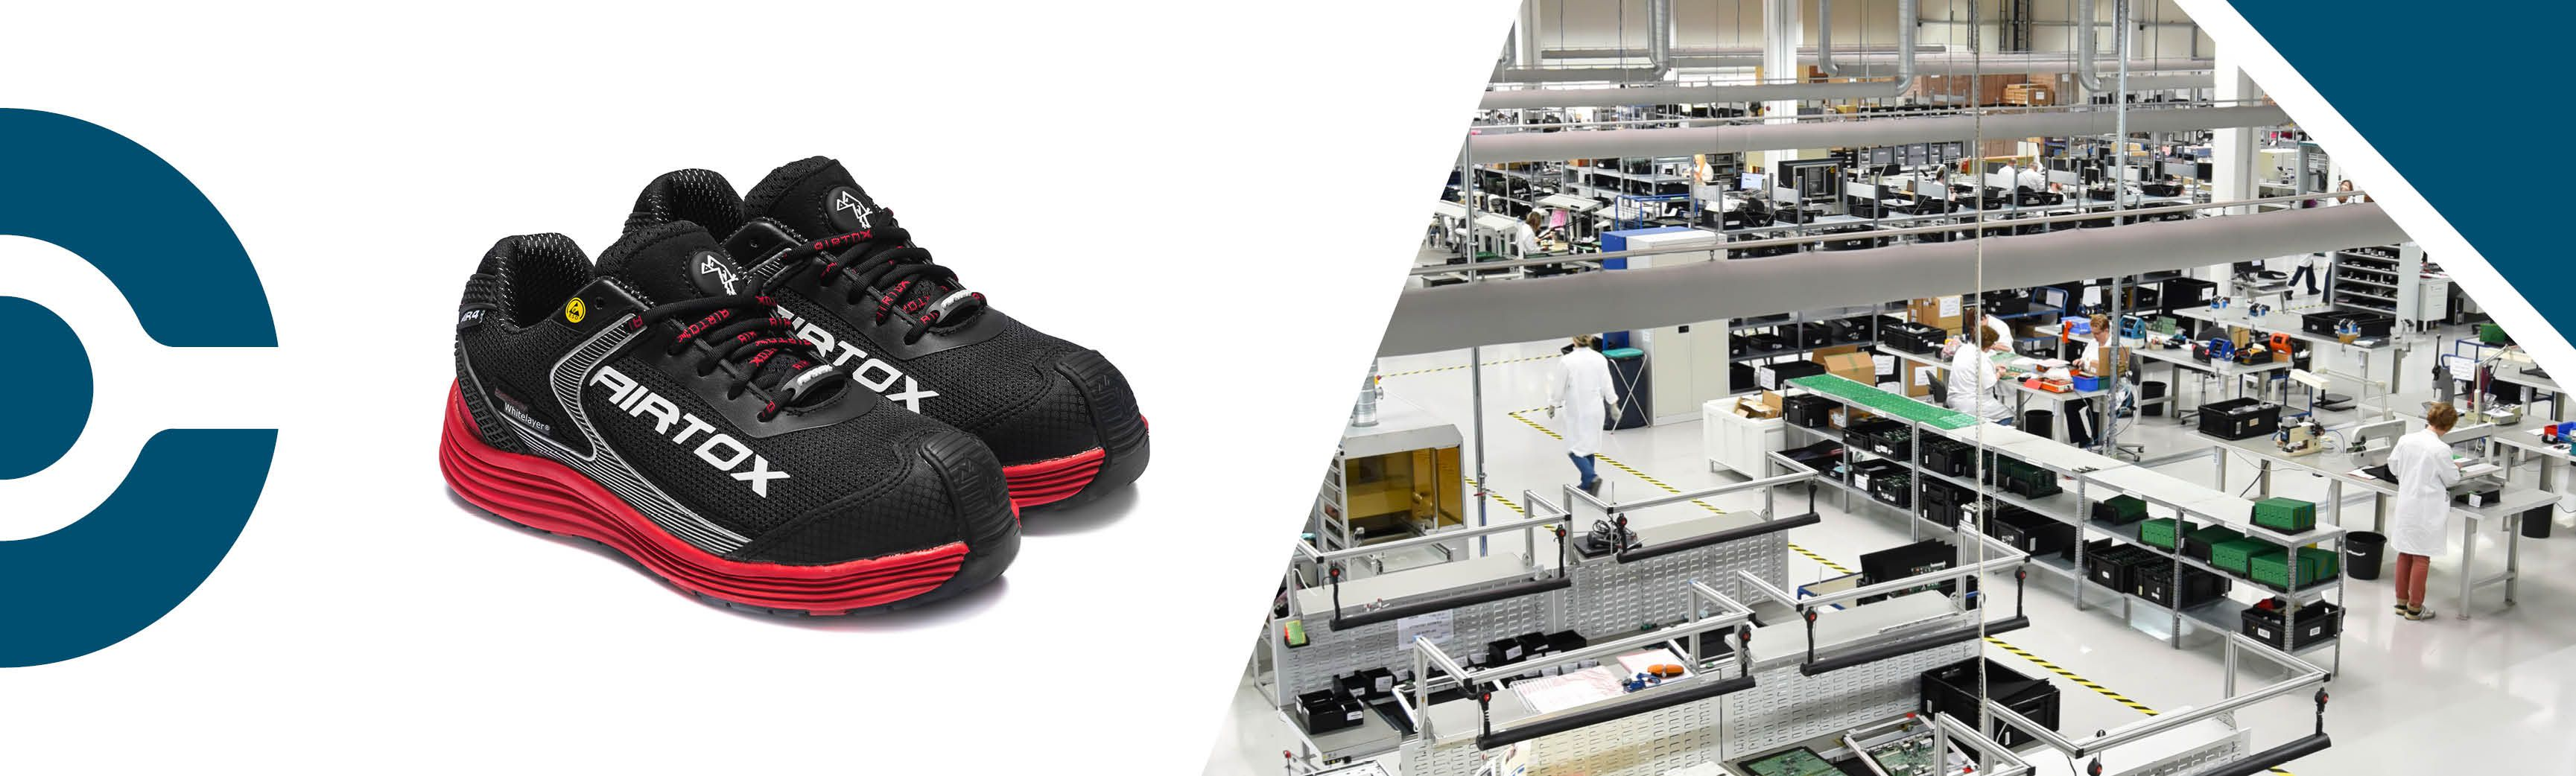 Shop AIRTOX ESD safety shoes beacuse it's a FAB ESD safety shoes